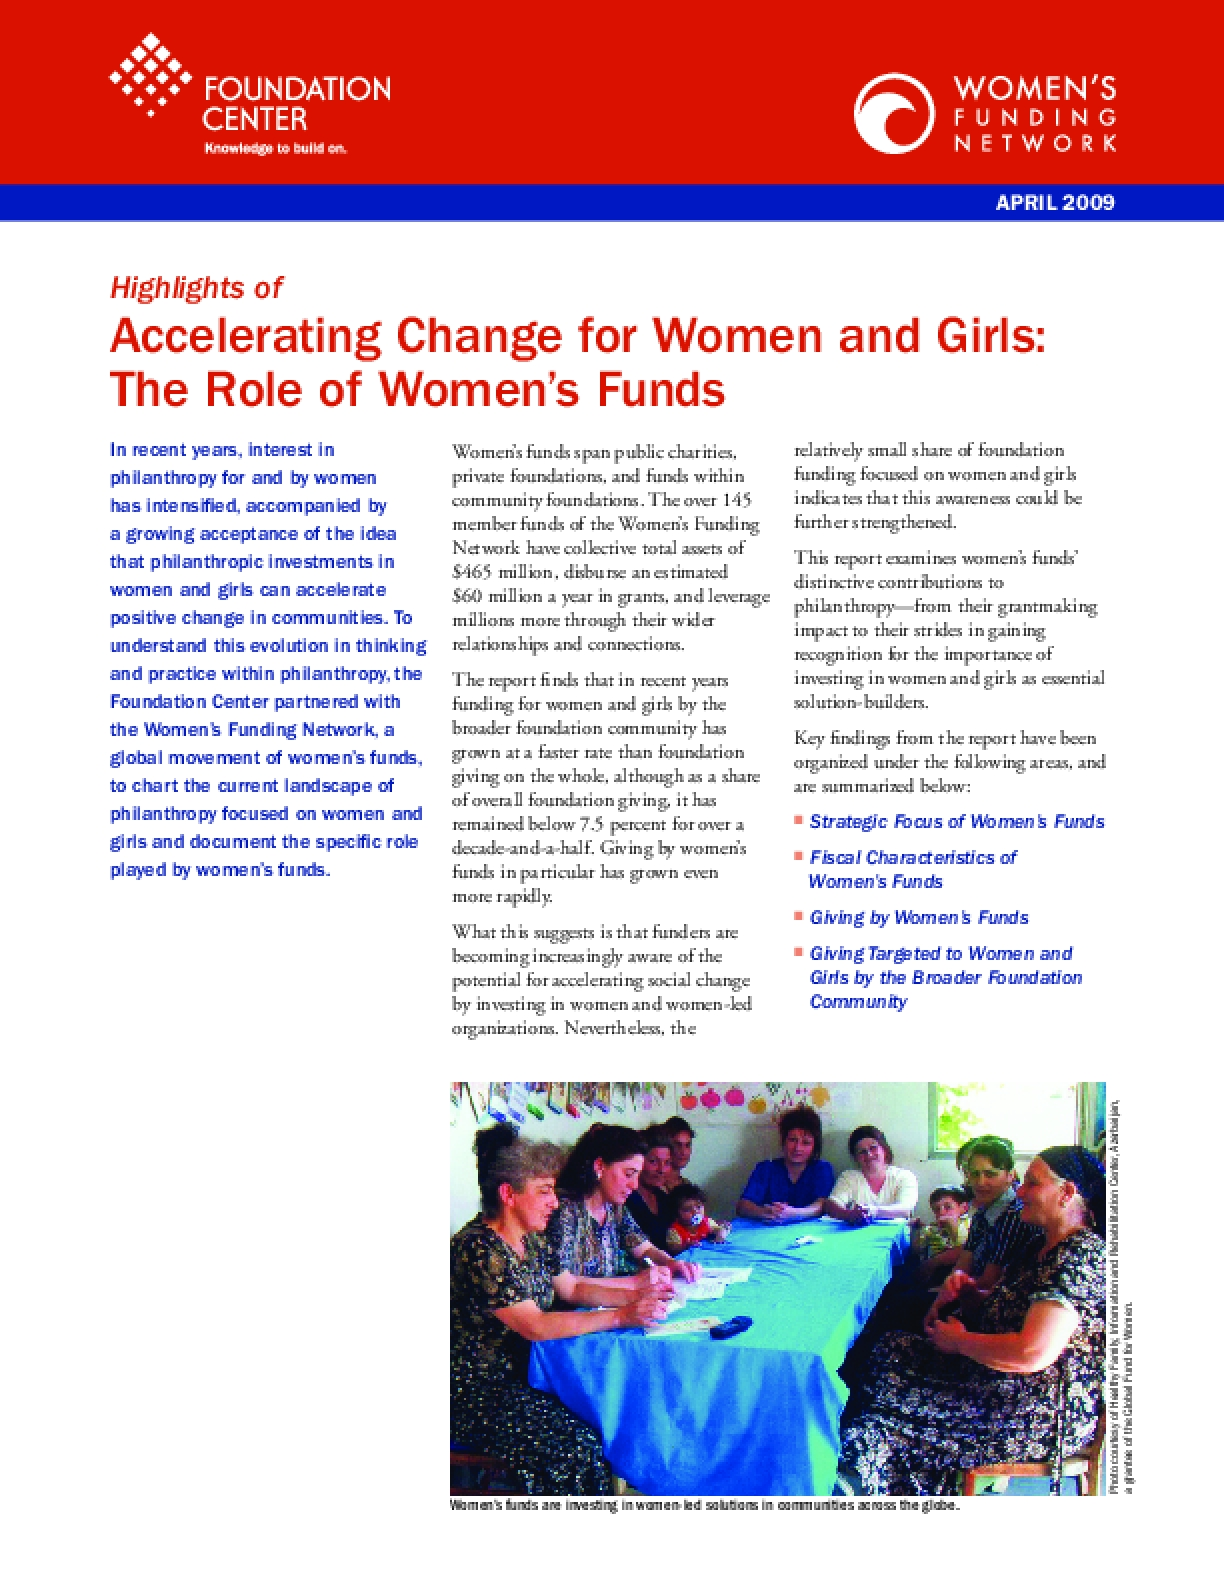 Accelerating Change for Women and Girls: The Role of Women's Funds (Executive Summary)